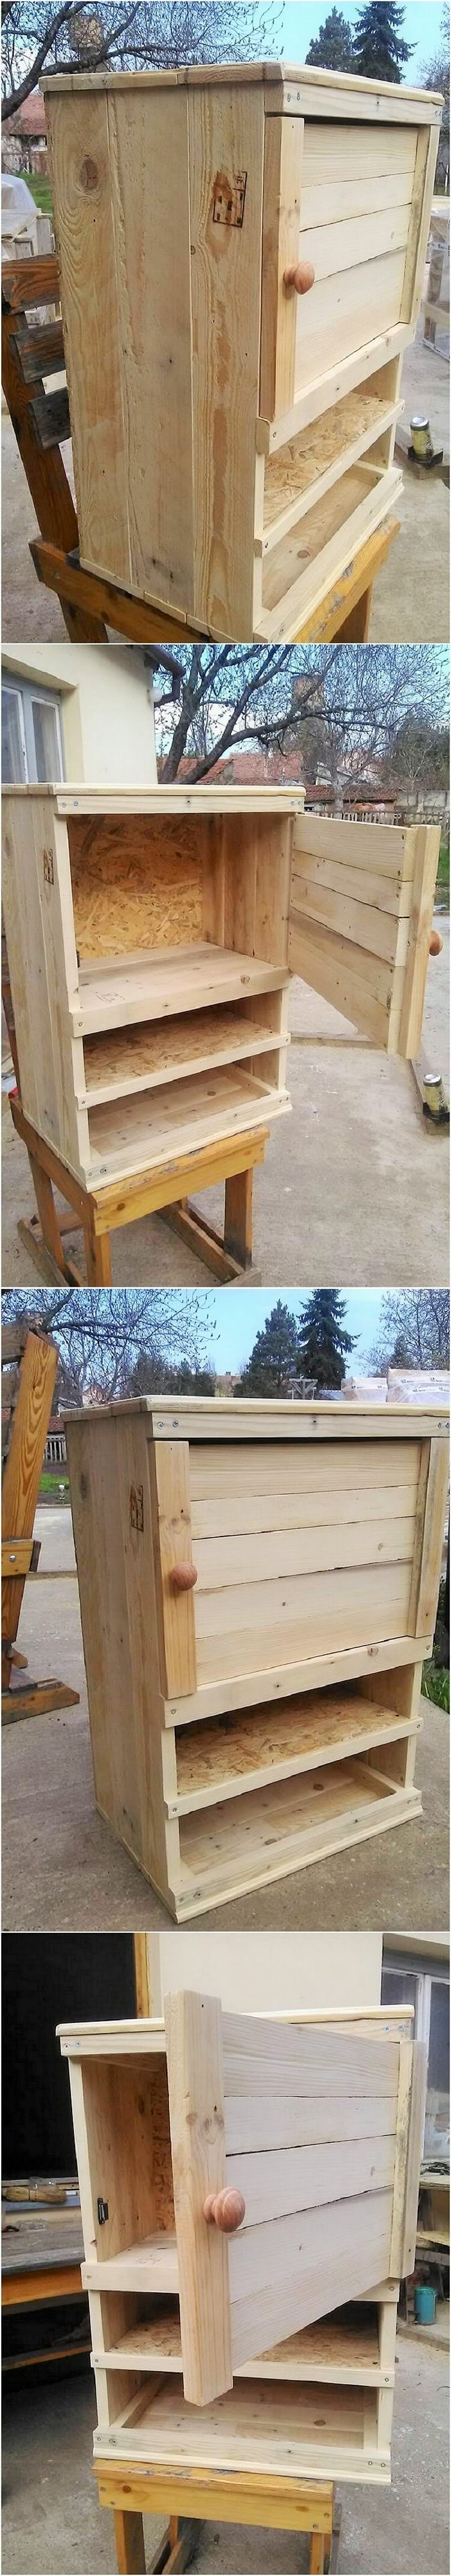 Old-Pallet- Diy-Recycle-Things-Projects-18